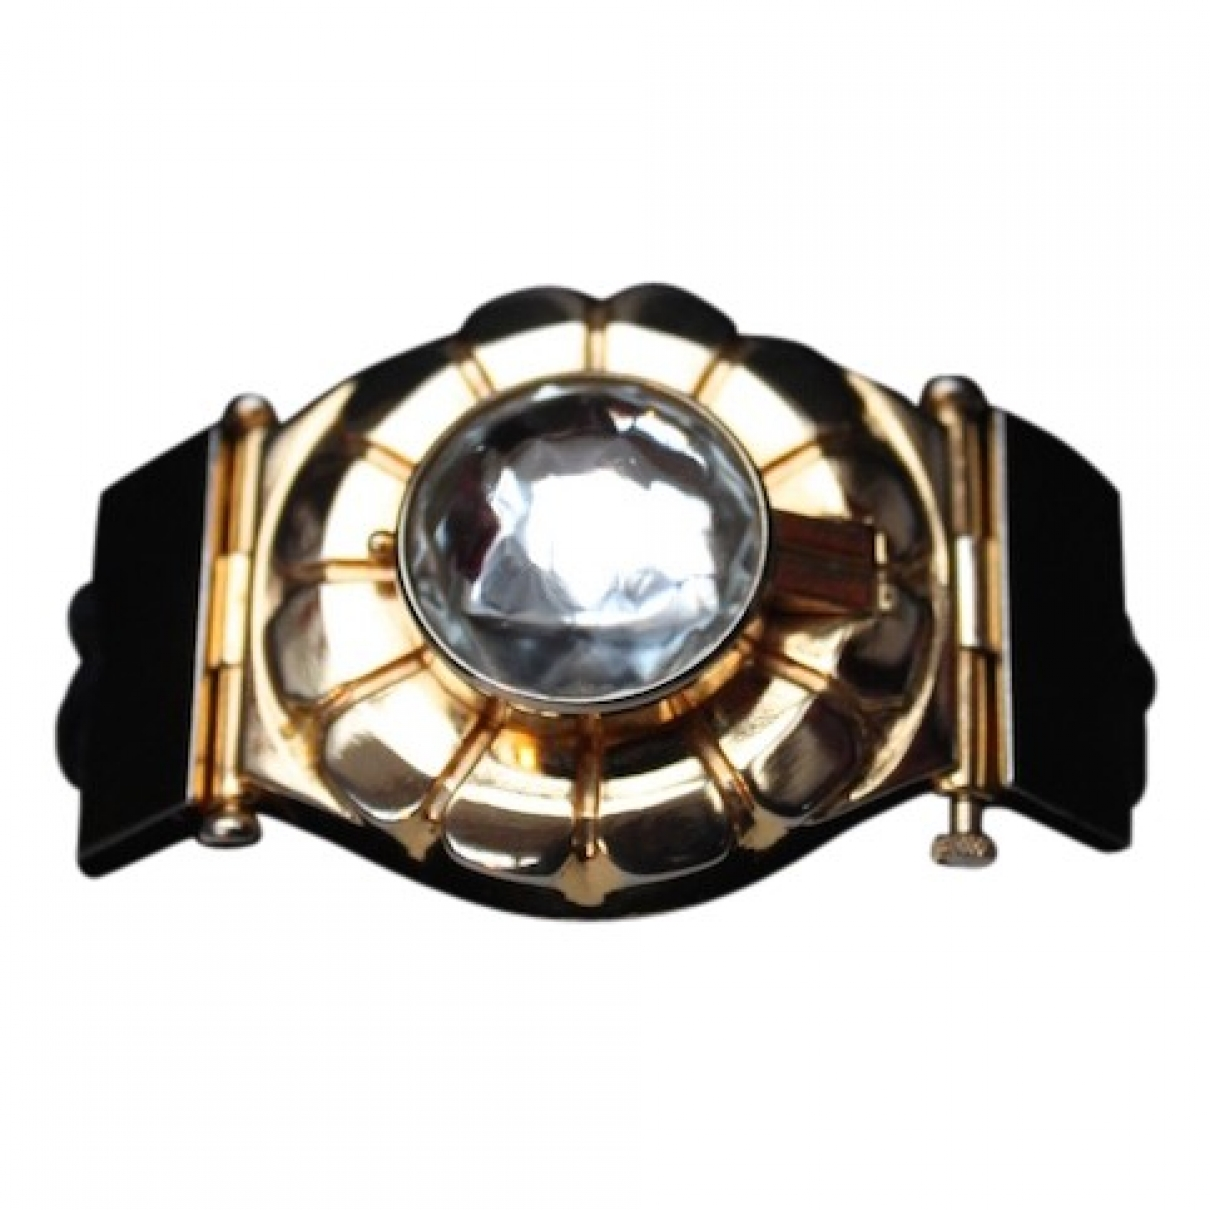 Yves Saint Laurent \N Armband in  Gold Metall